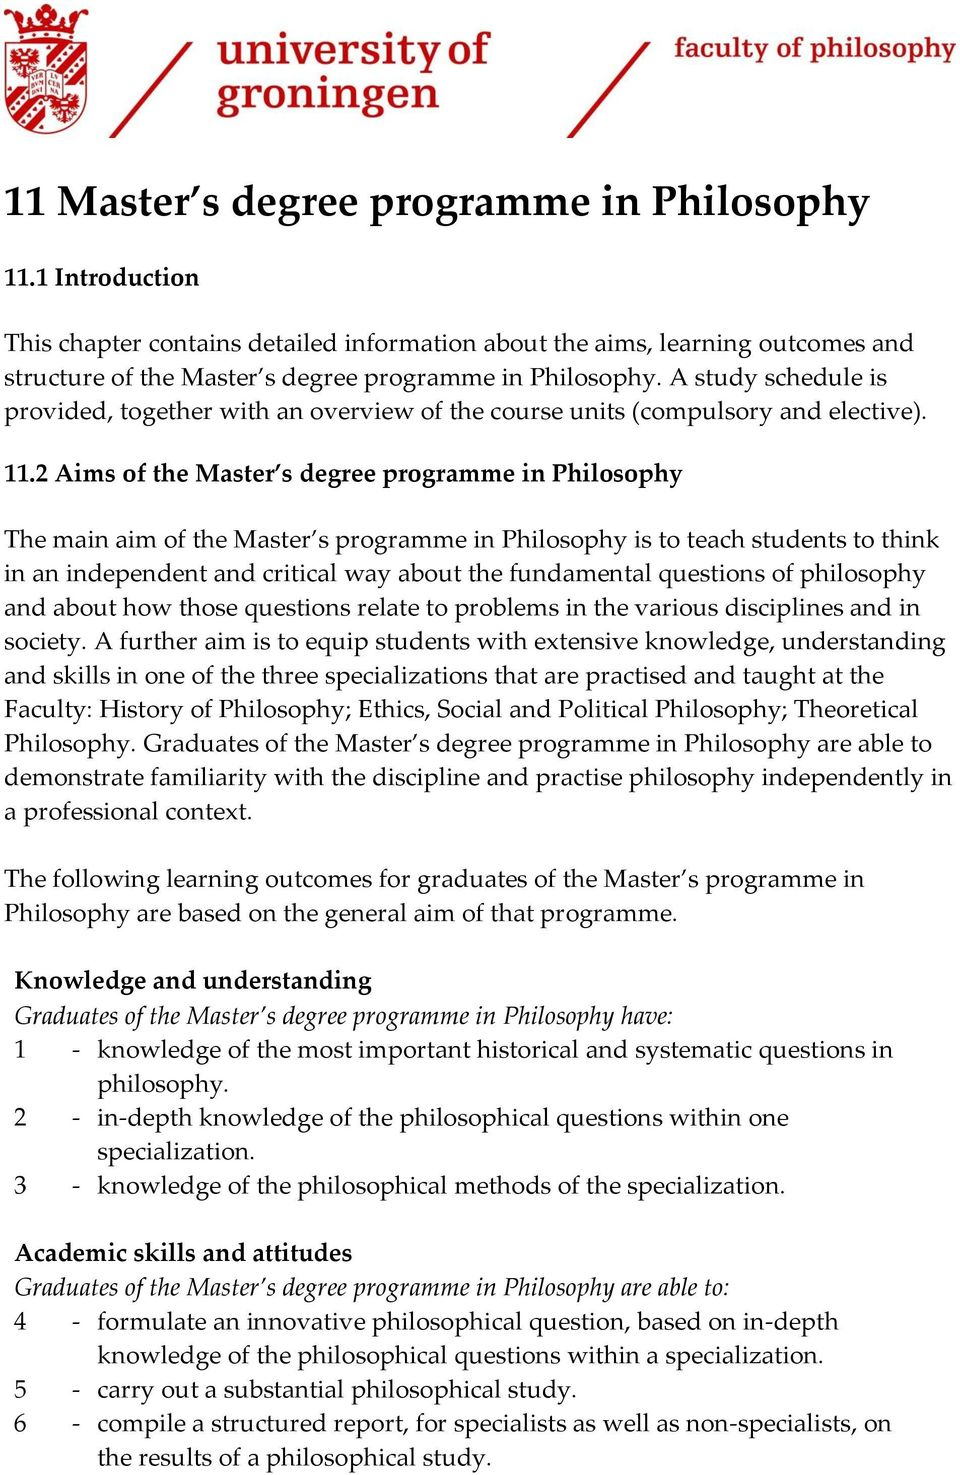 2 Aims of the Master s degree programme in Philosophy The main aim of the Master s programme in Philosophy is to teach students to think in an independent and critical way about the fundamental